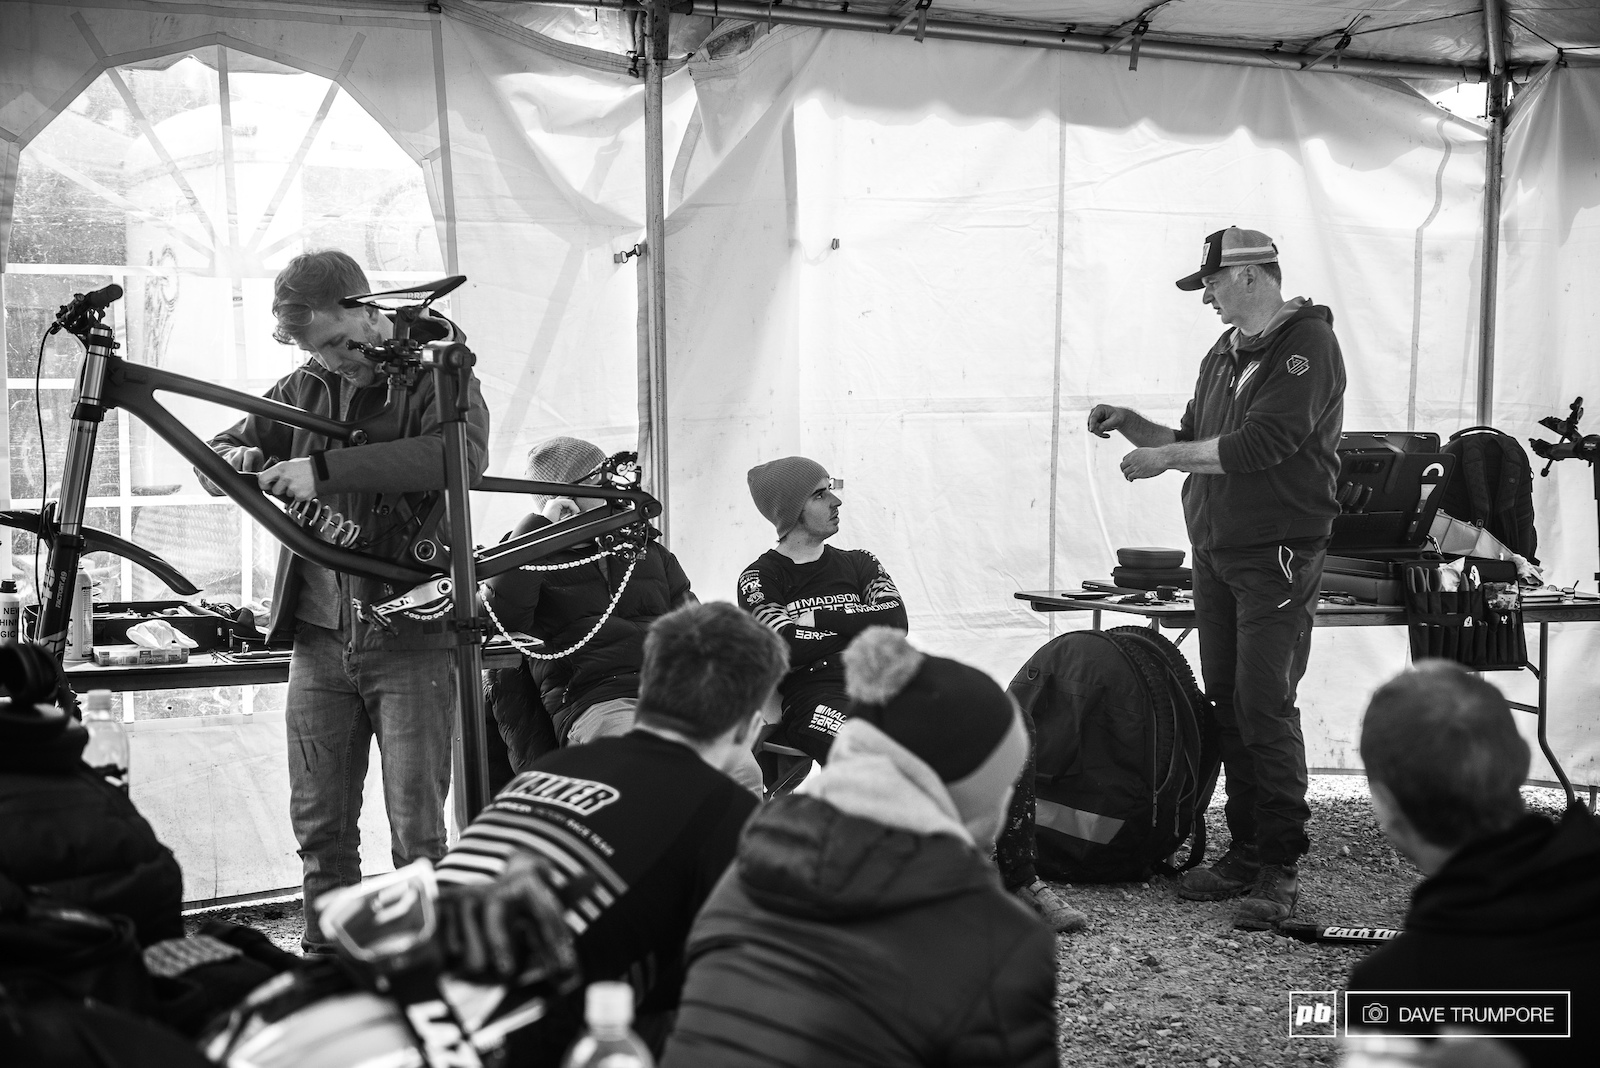 Engineers from Saracen were on site to help Danny Hart and the team get their bikes prepped for the World Cup season.